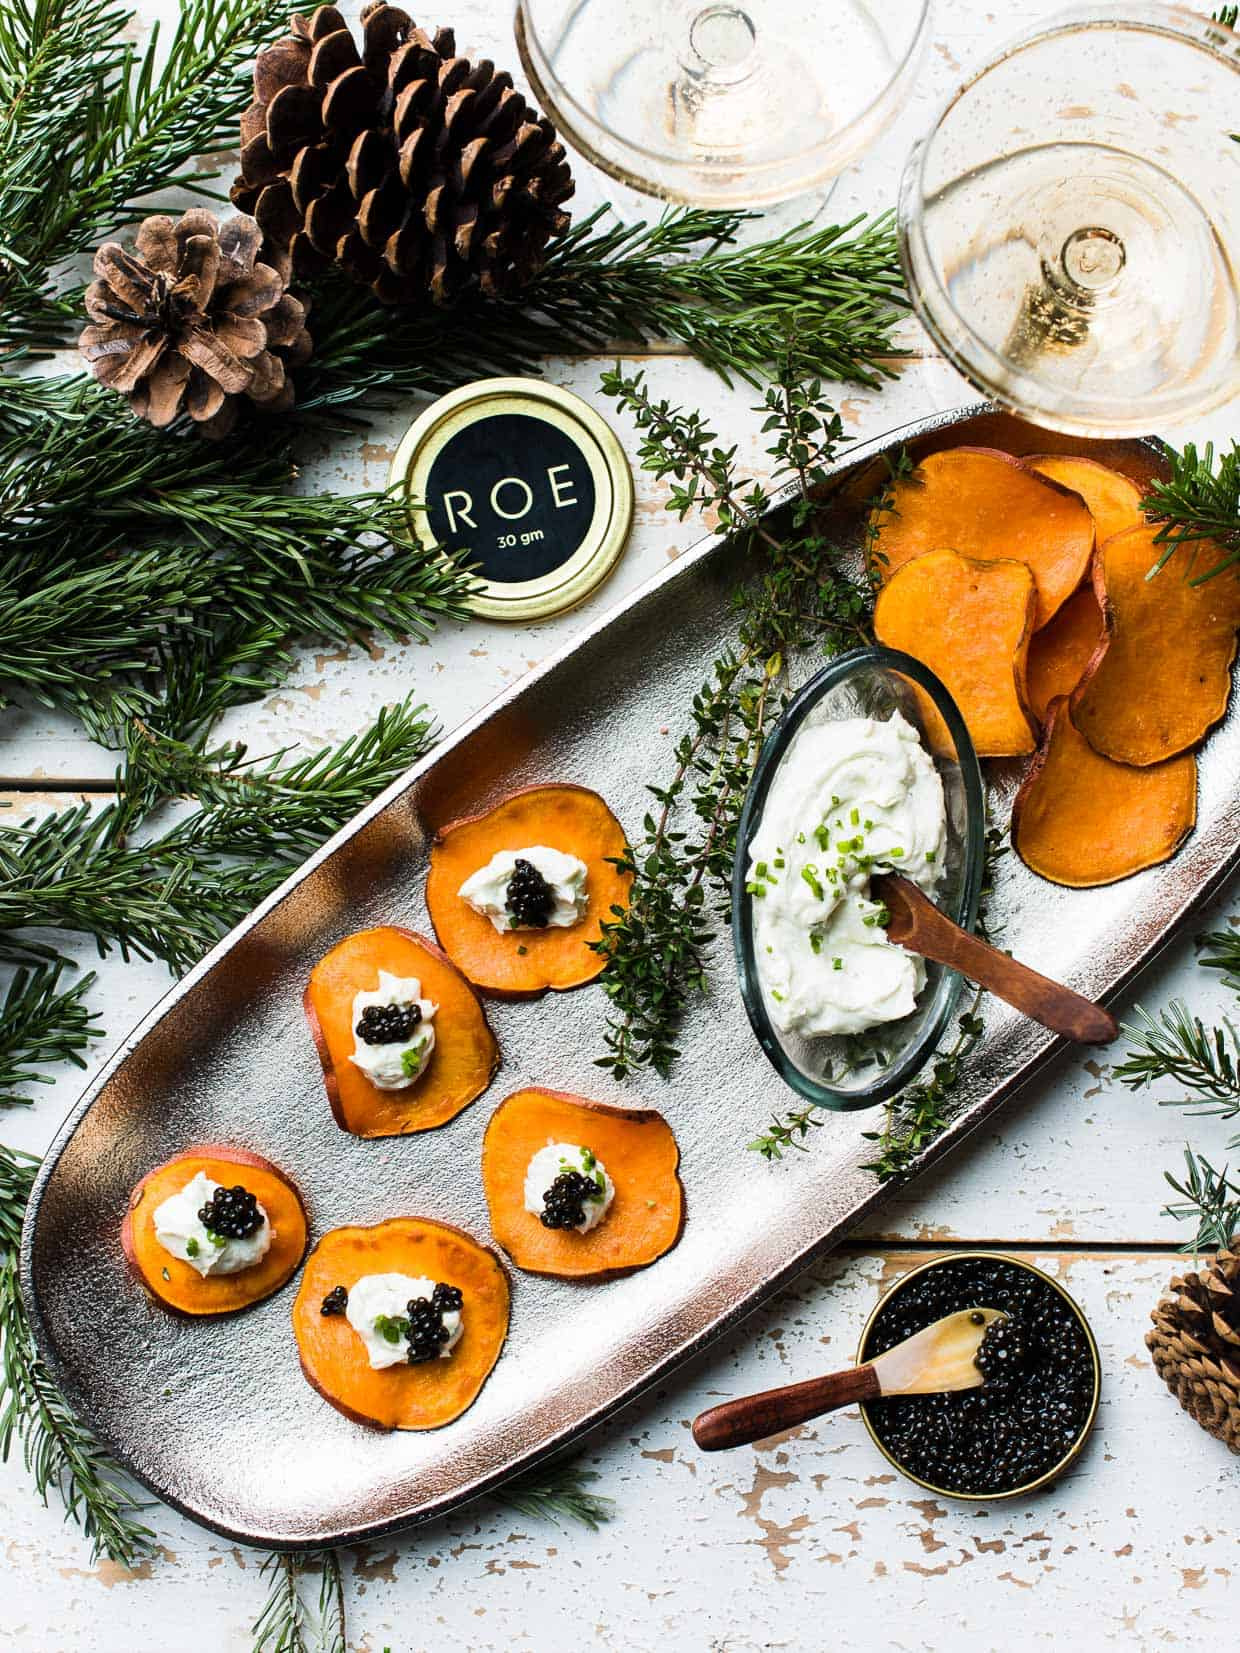 Sweet Potato Chips with Whipped Goat Cheese and Caviar on a serving tray surrounded by additional caviar, goat cheese, and festive pine boughs.